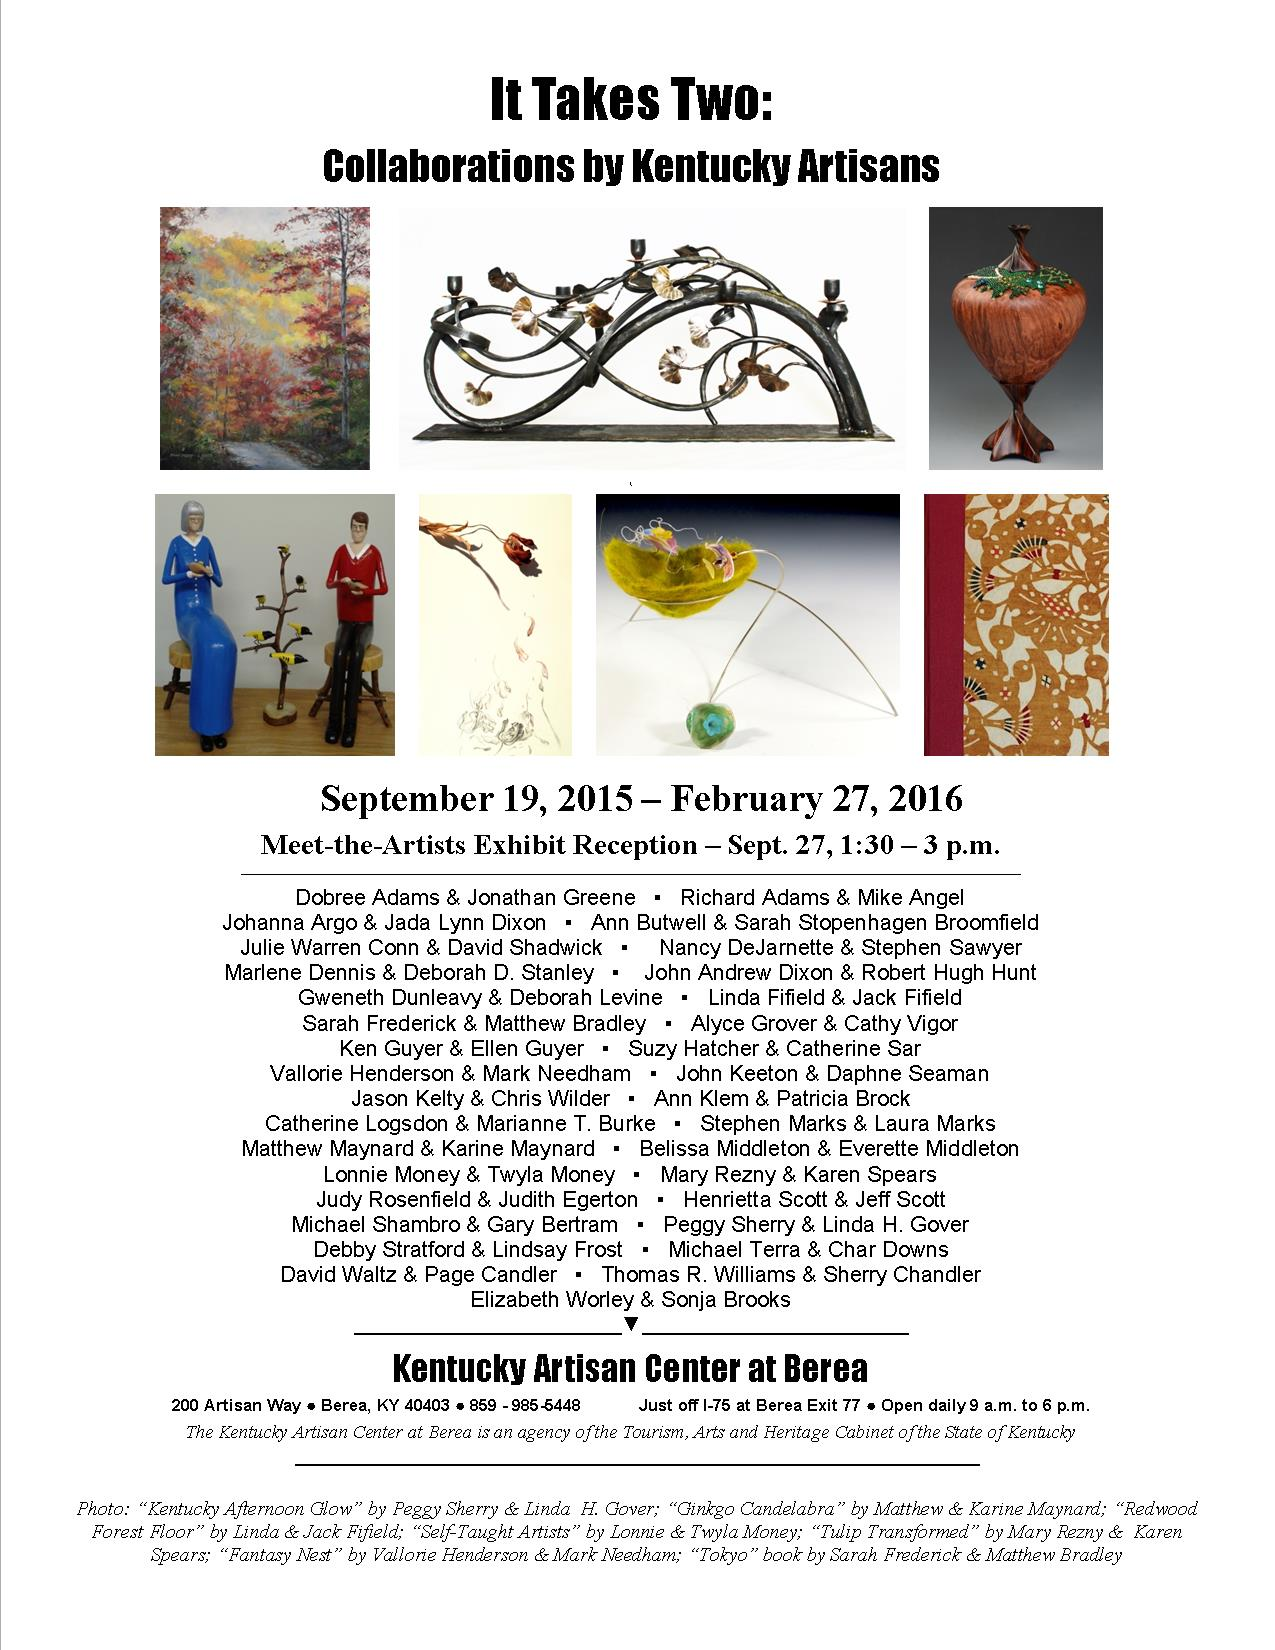 John Andrew Dixon ~ It Takes Two ~ Collaborations by Kentucky Artisans ~ Kentucky Artisan Center at Berea ~ September 19, 2015 to February 27, 2016